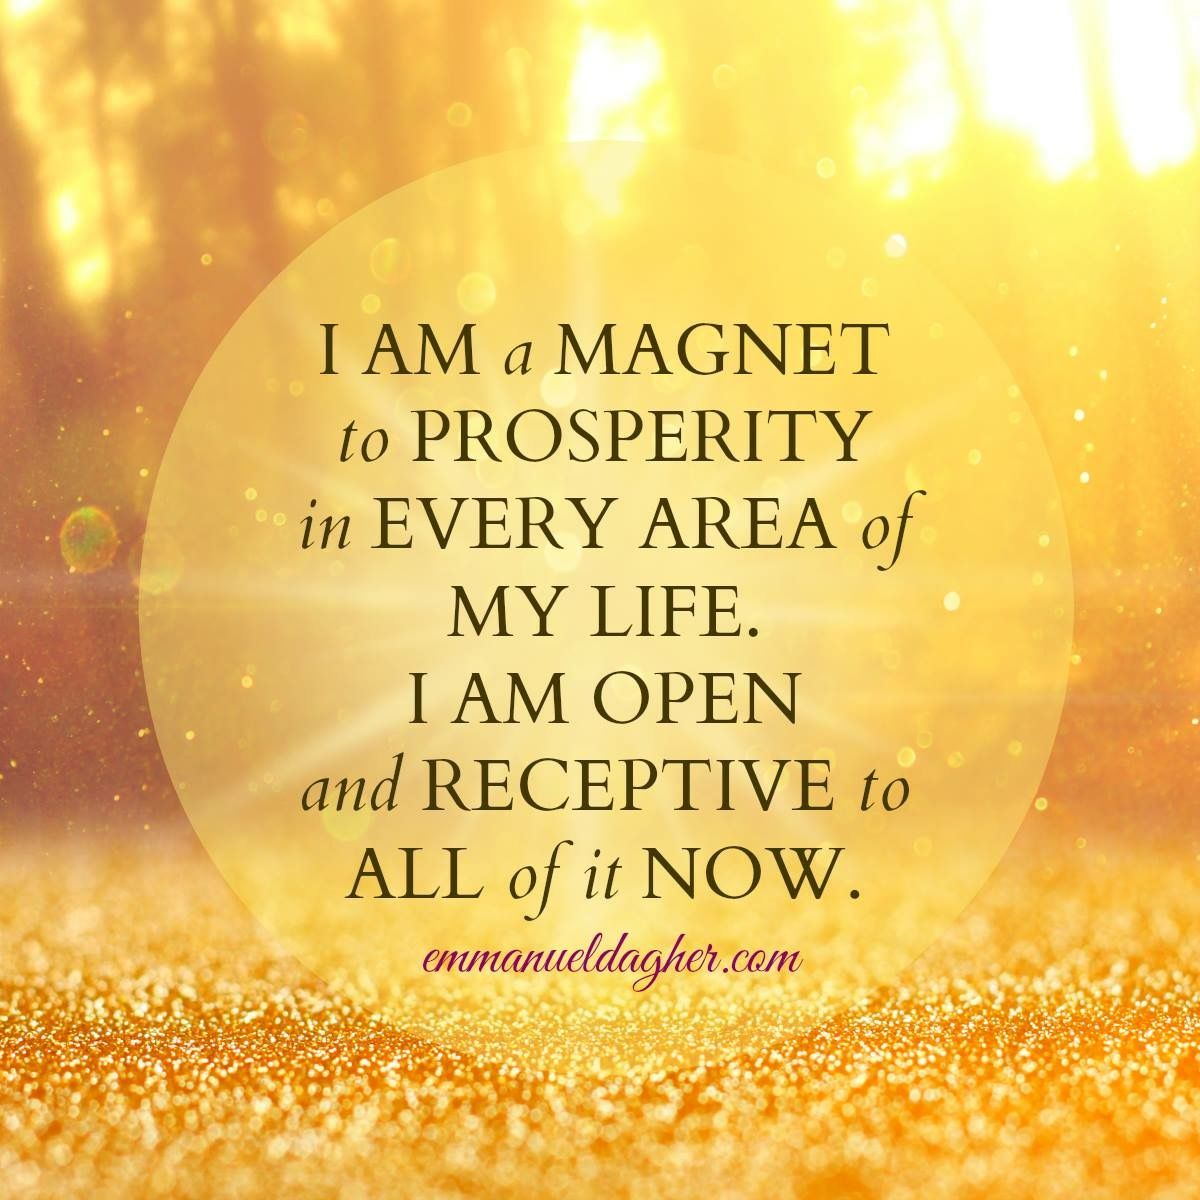 Pin by Treva McFadden on Affirmations Prosperity quotes